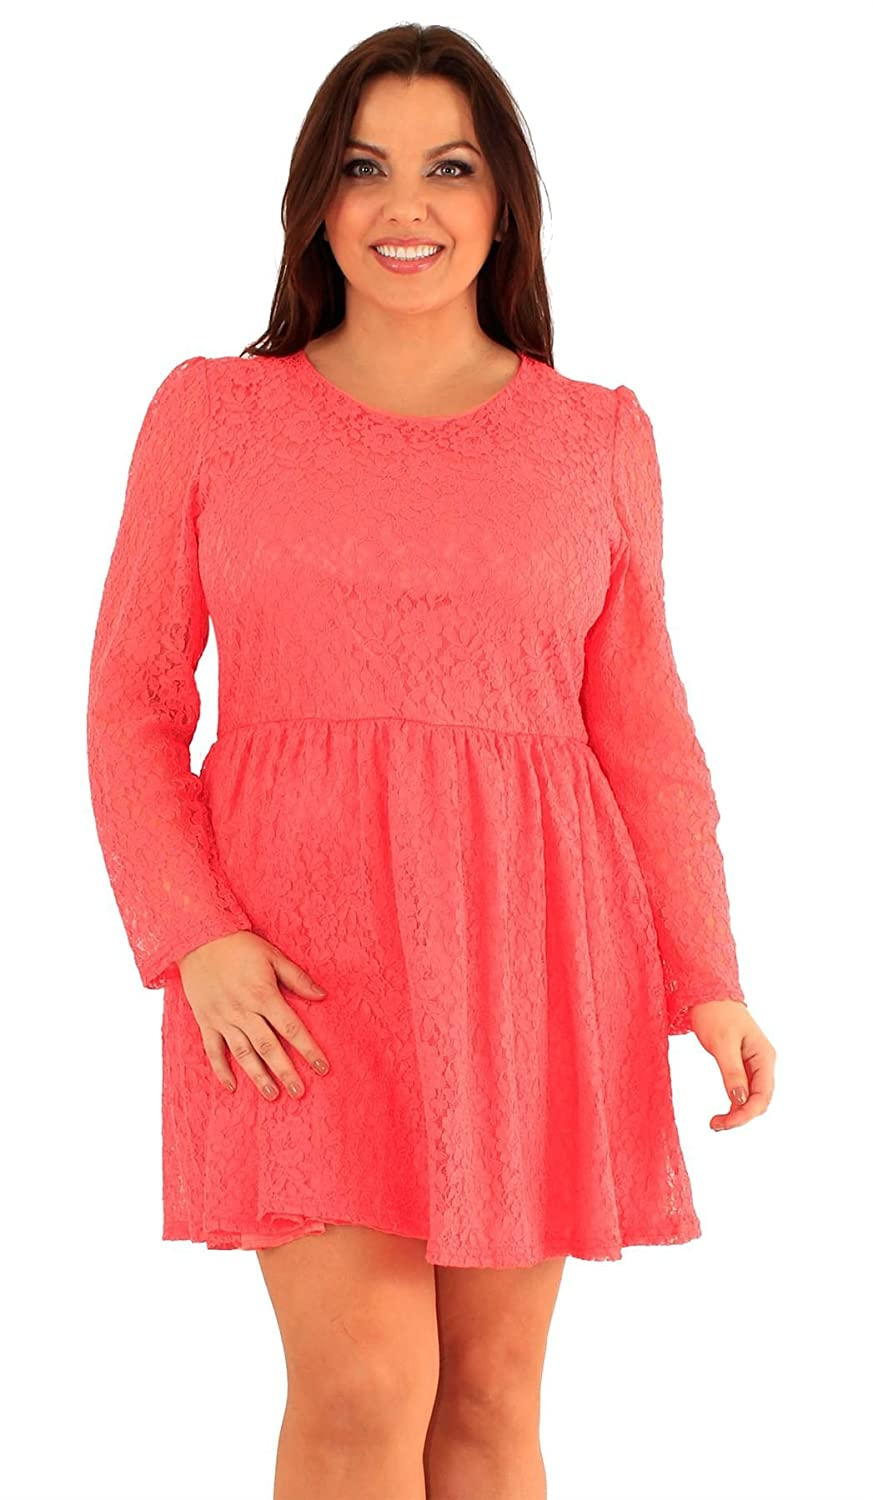 09d9b6908a69 New Womens Plus Size Floral Lace Puff Long Sleeve Skater Going Out Dress  US14-20: Amazon.ca: Clothing & Accessories